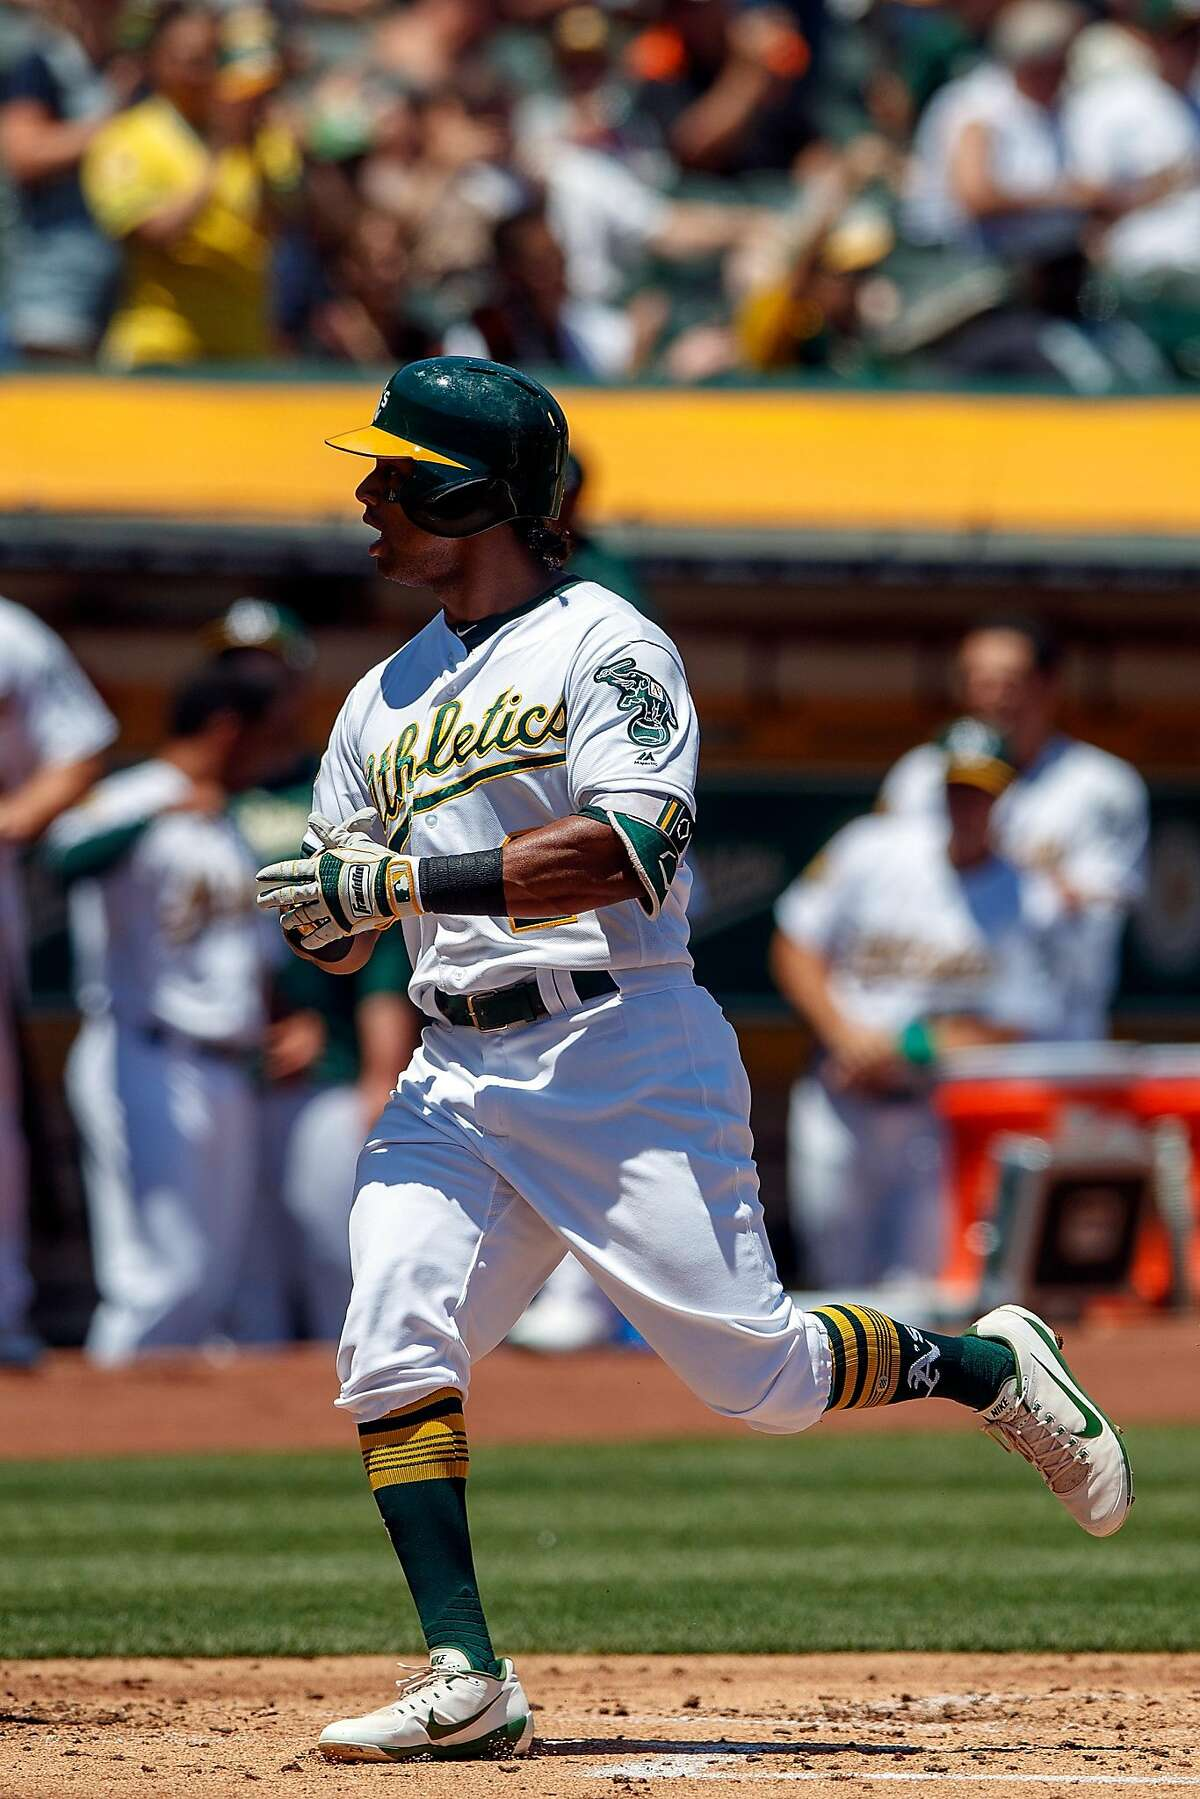 Khris Davis #2 of the Oakland Athletics celebrates after hitting a two run home run against the San Francisco Giants during the first inning at the Oakland Coliseum on July 22, 2018 in Oakland, California.